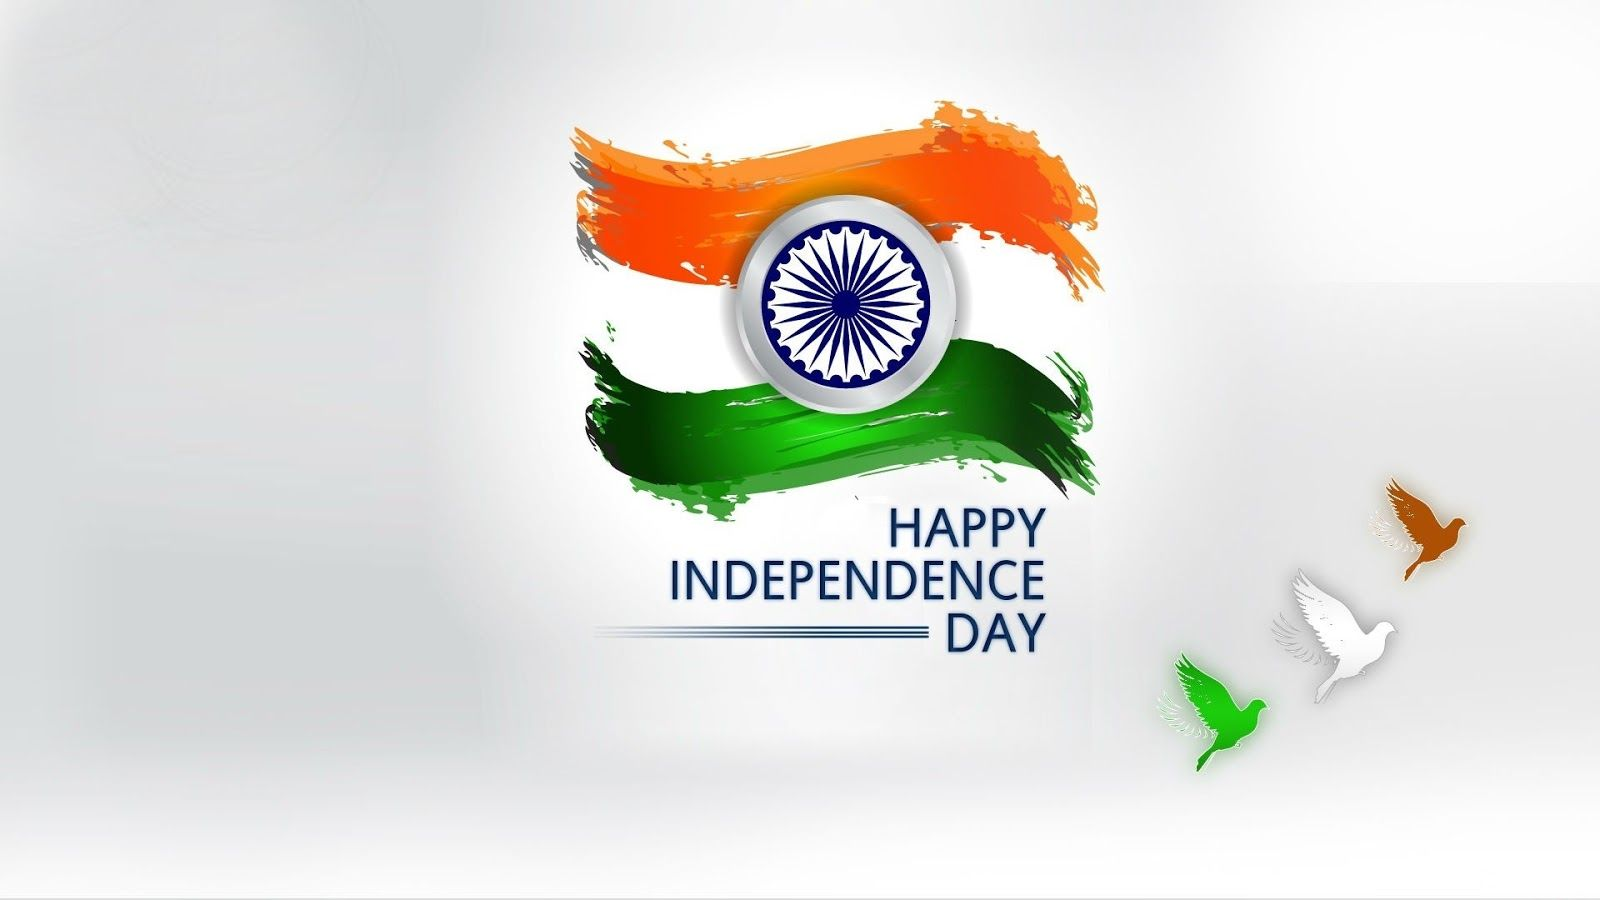 Happy Independence Day Hd Wallpapers Images Photos Wallpapers